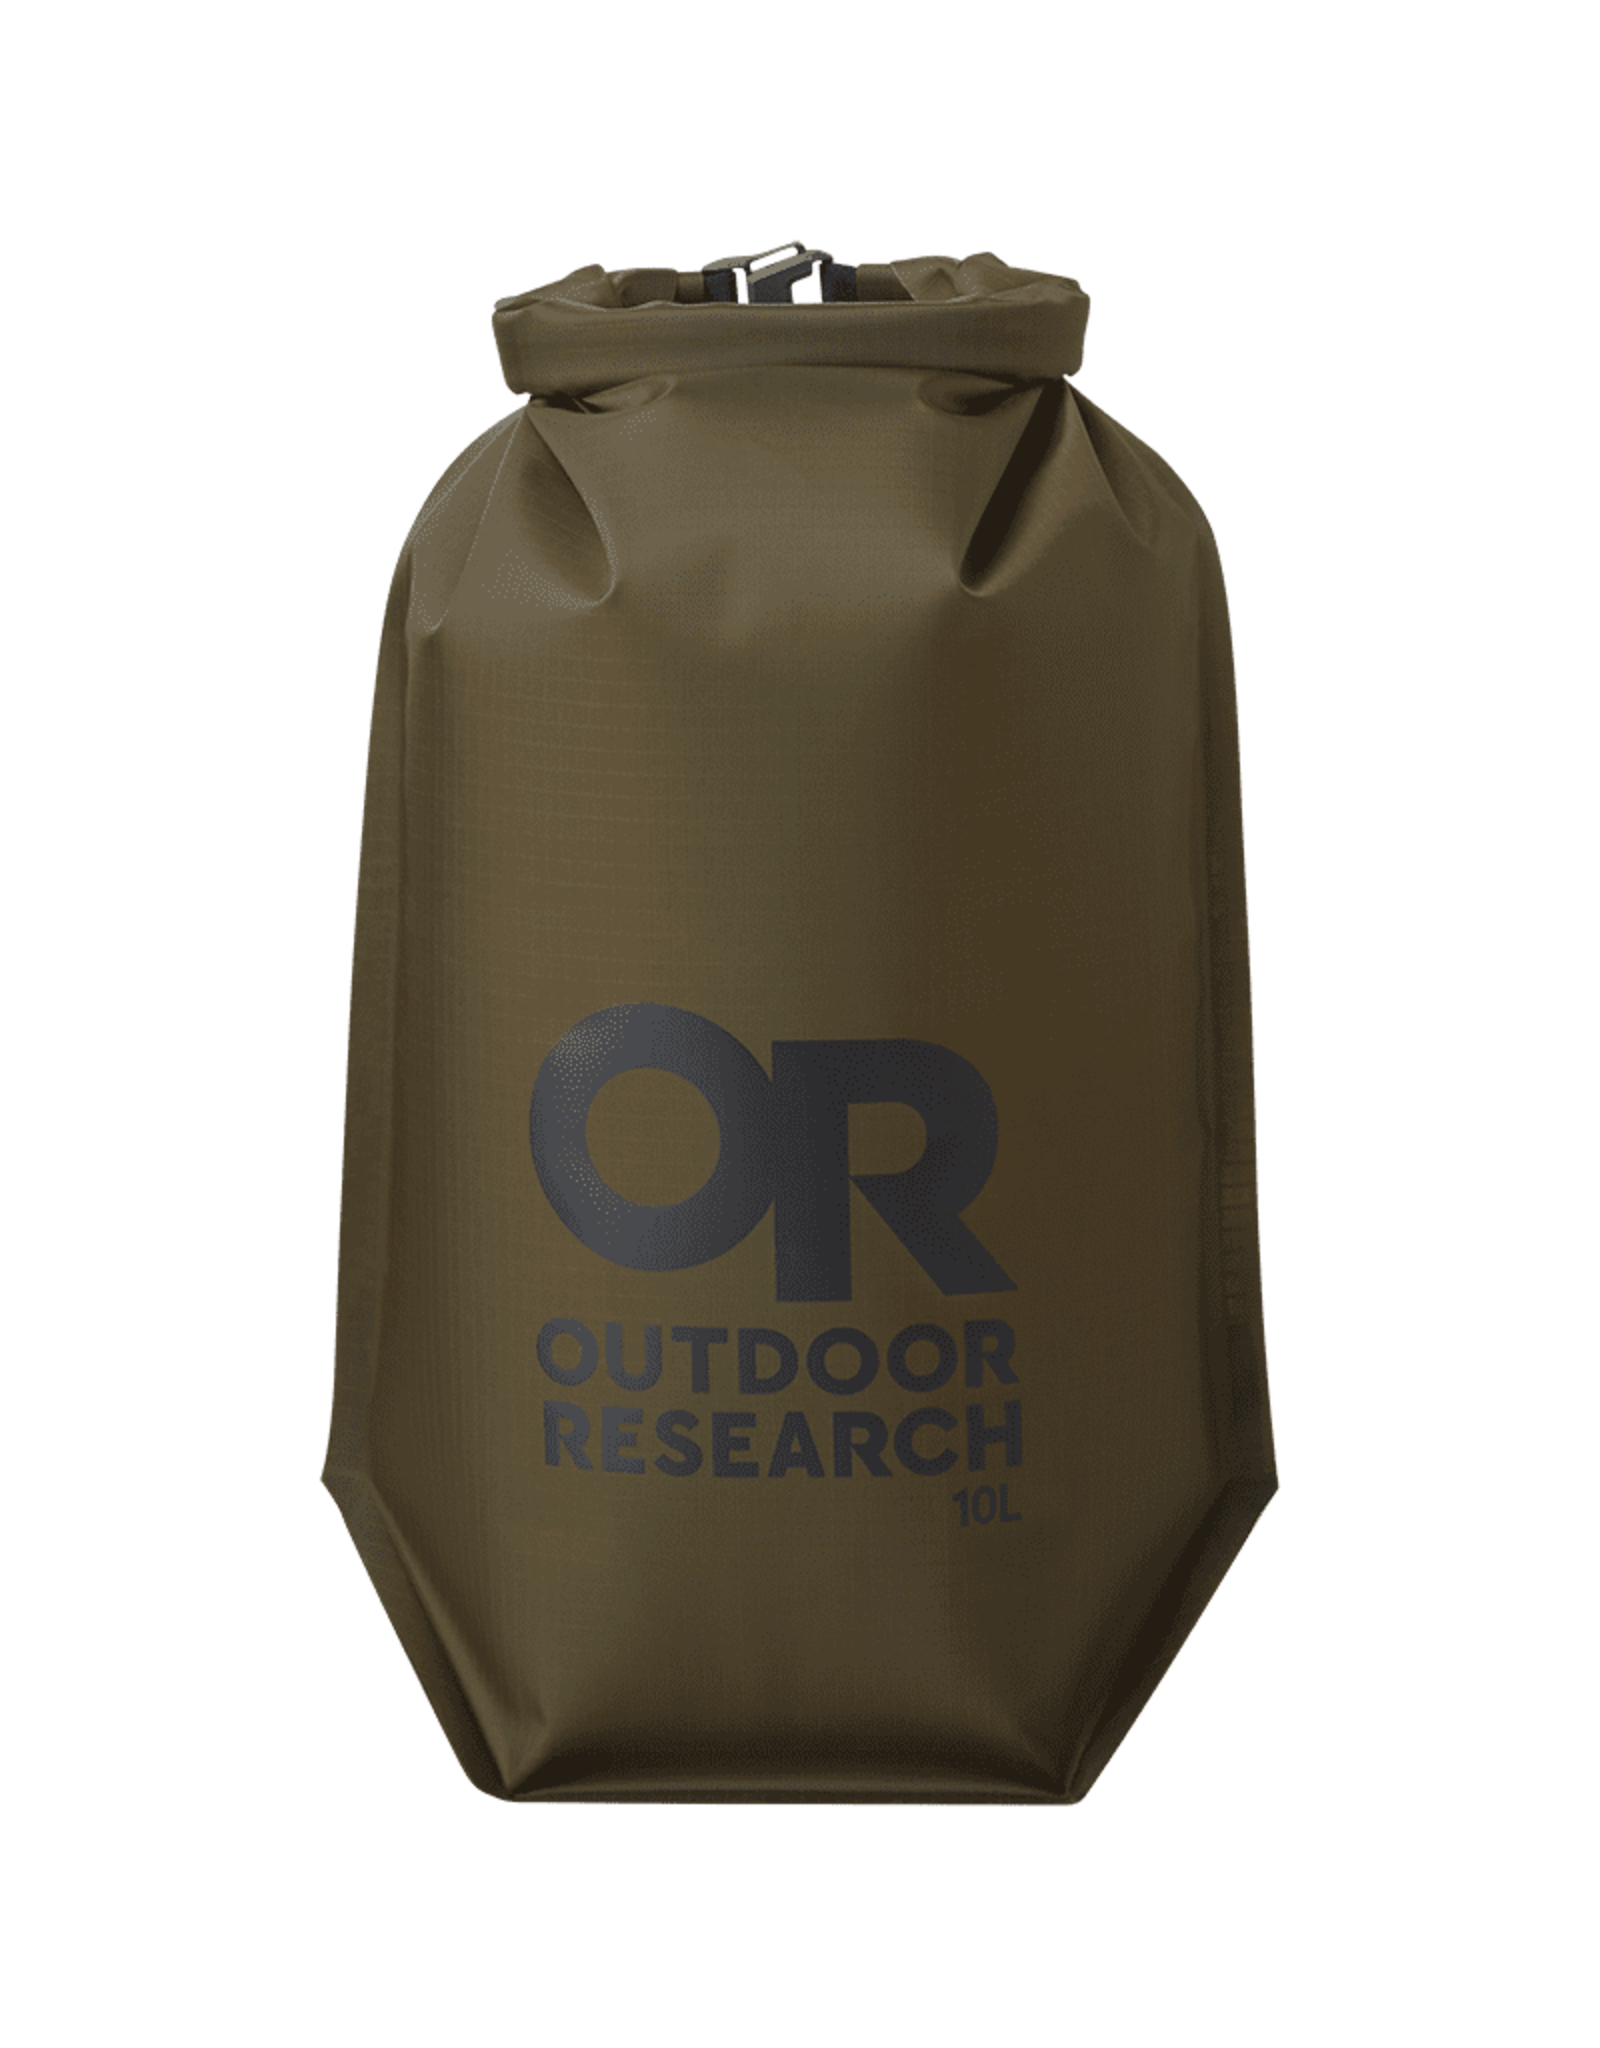 OUTDOOR RESEARCH CARRYOUT DRY BAG 10L